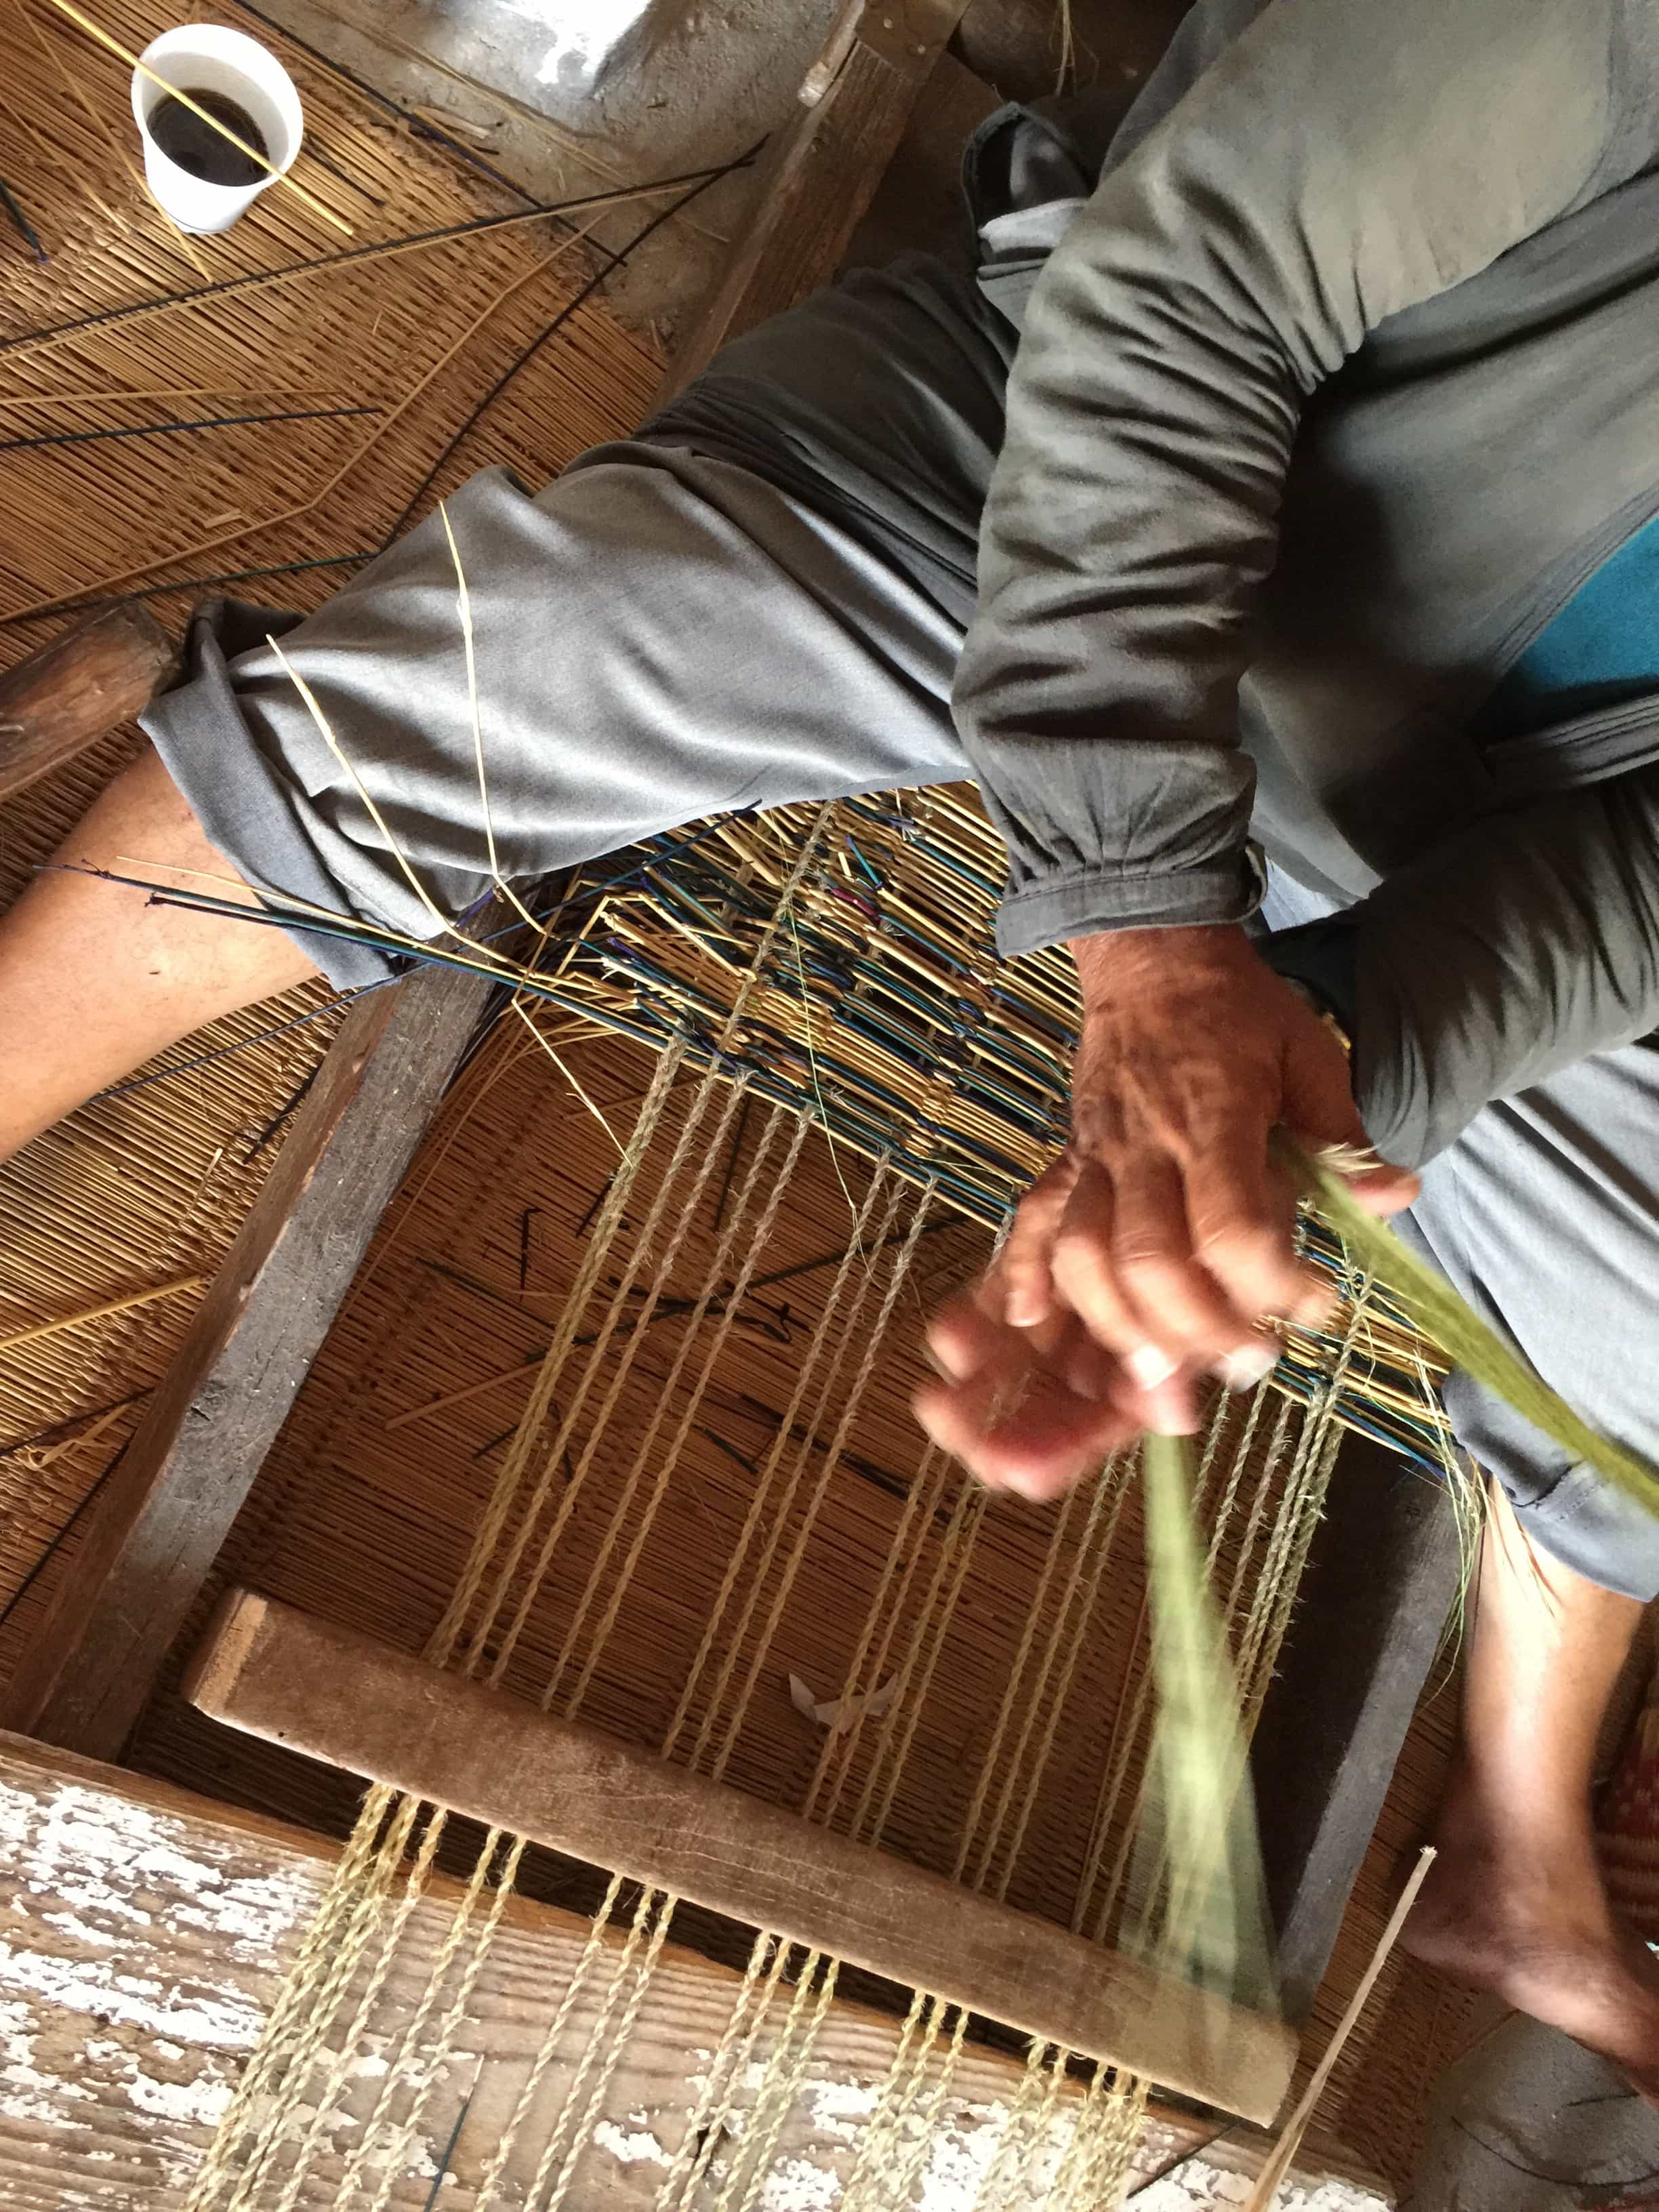 Tunisian Basketry — Weaving Overhead